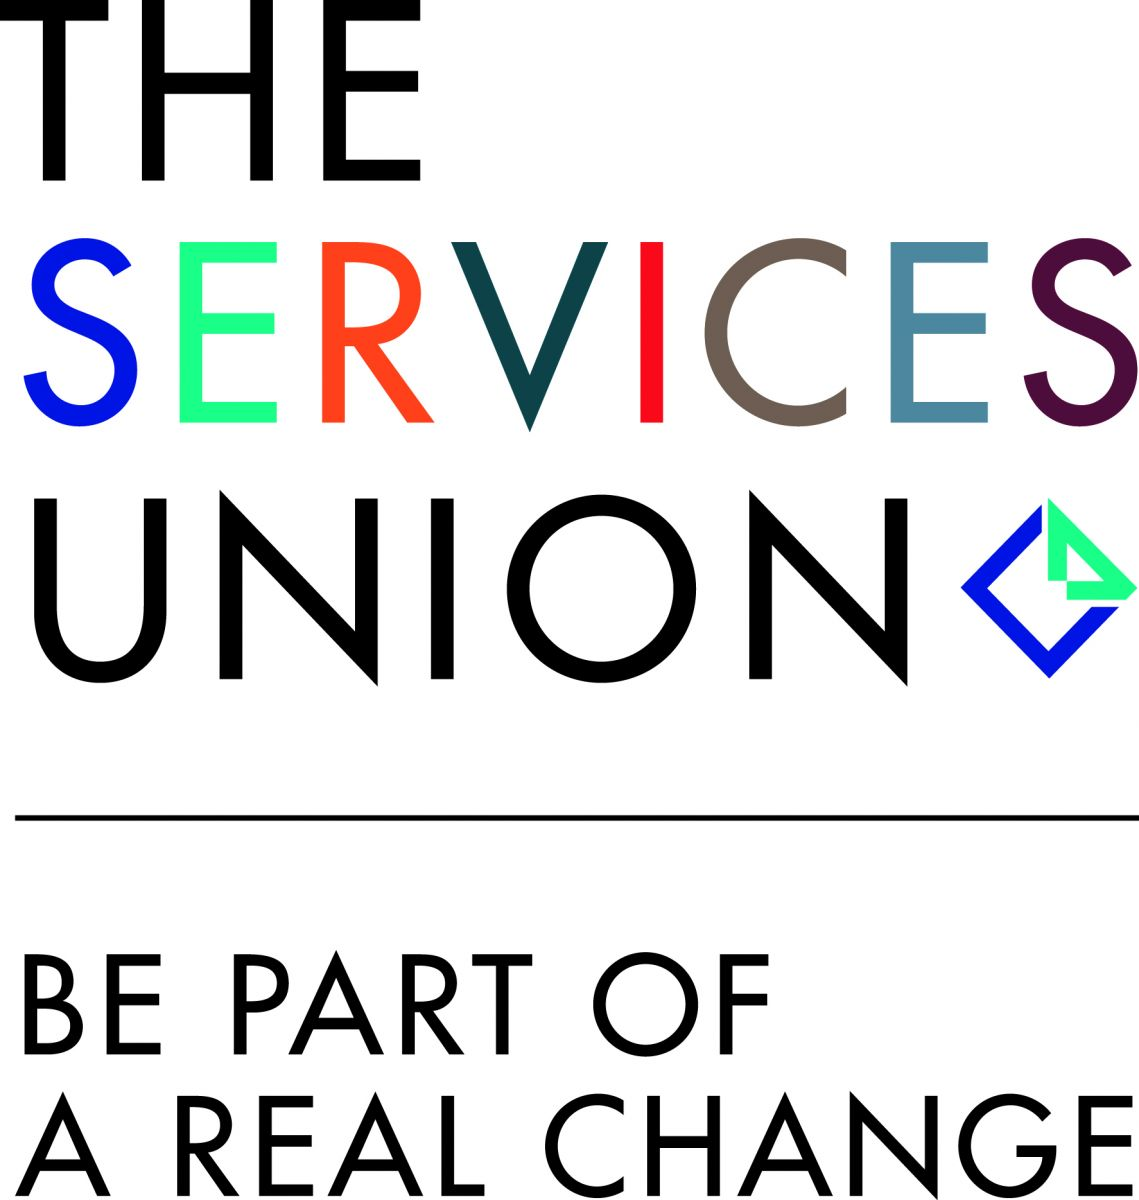 The Services Union